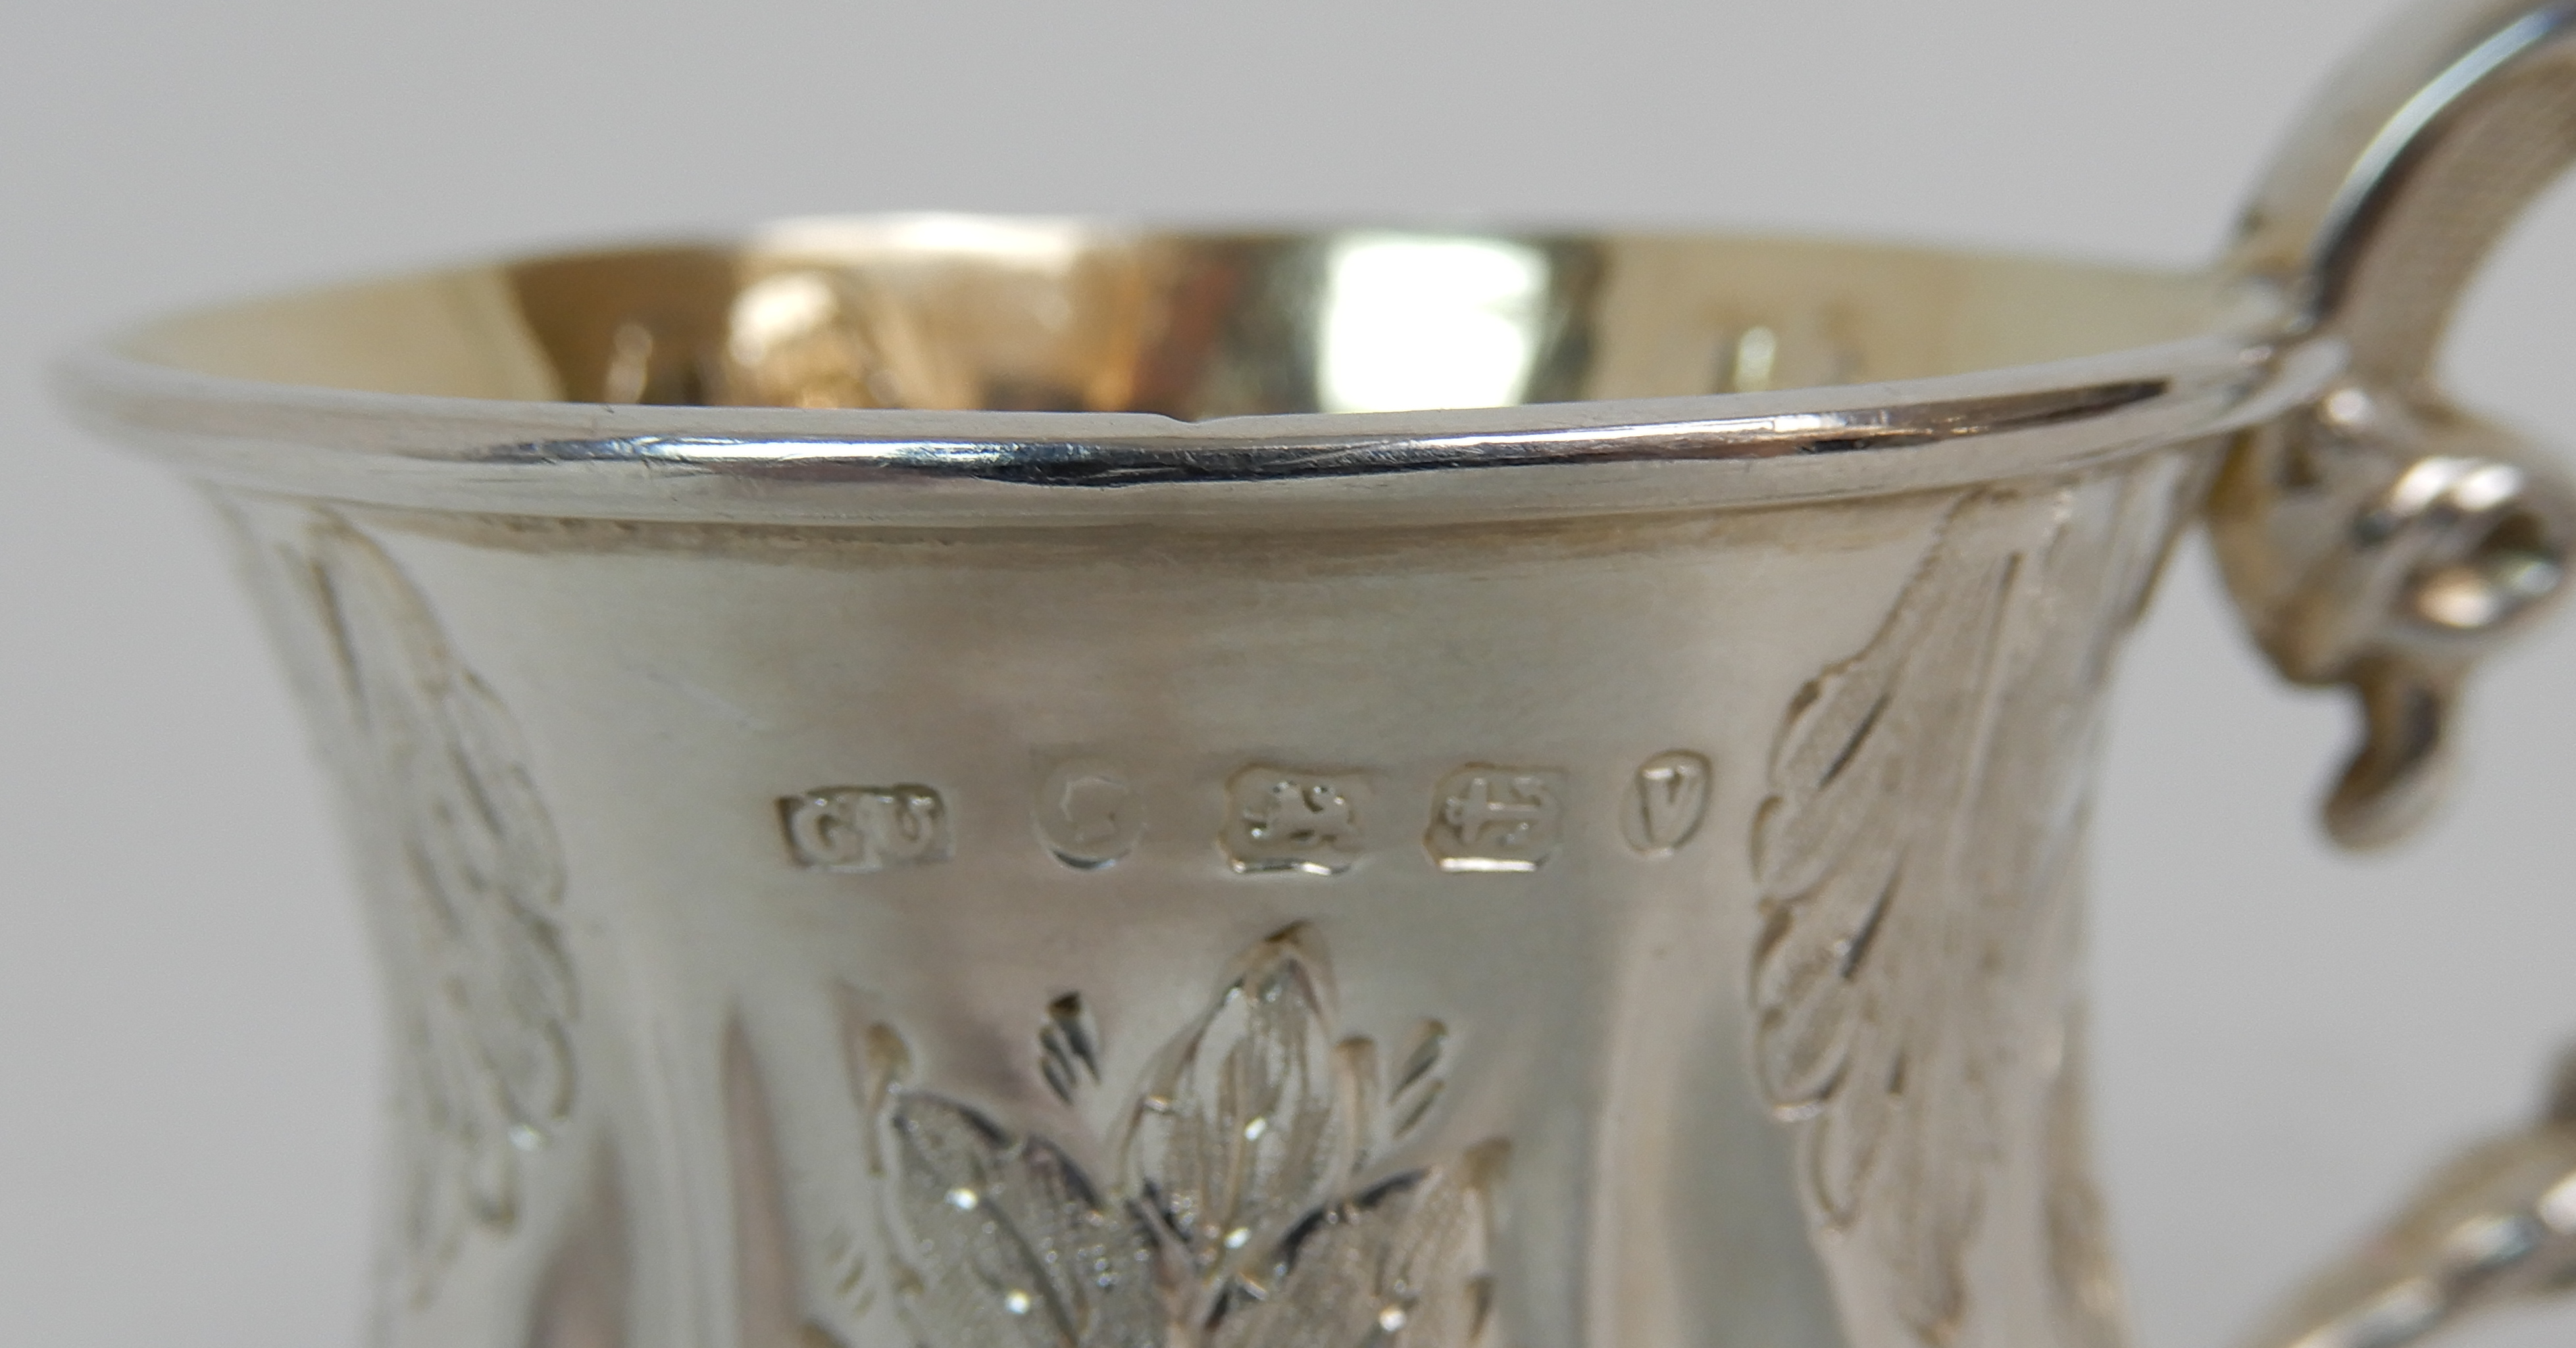 Lot 158 - A VICTORIAN SILVER CHRISTENING MUG by George Unite, Birmingham 1870, of baluster shape, the body